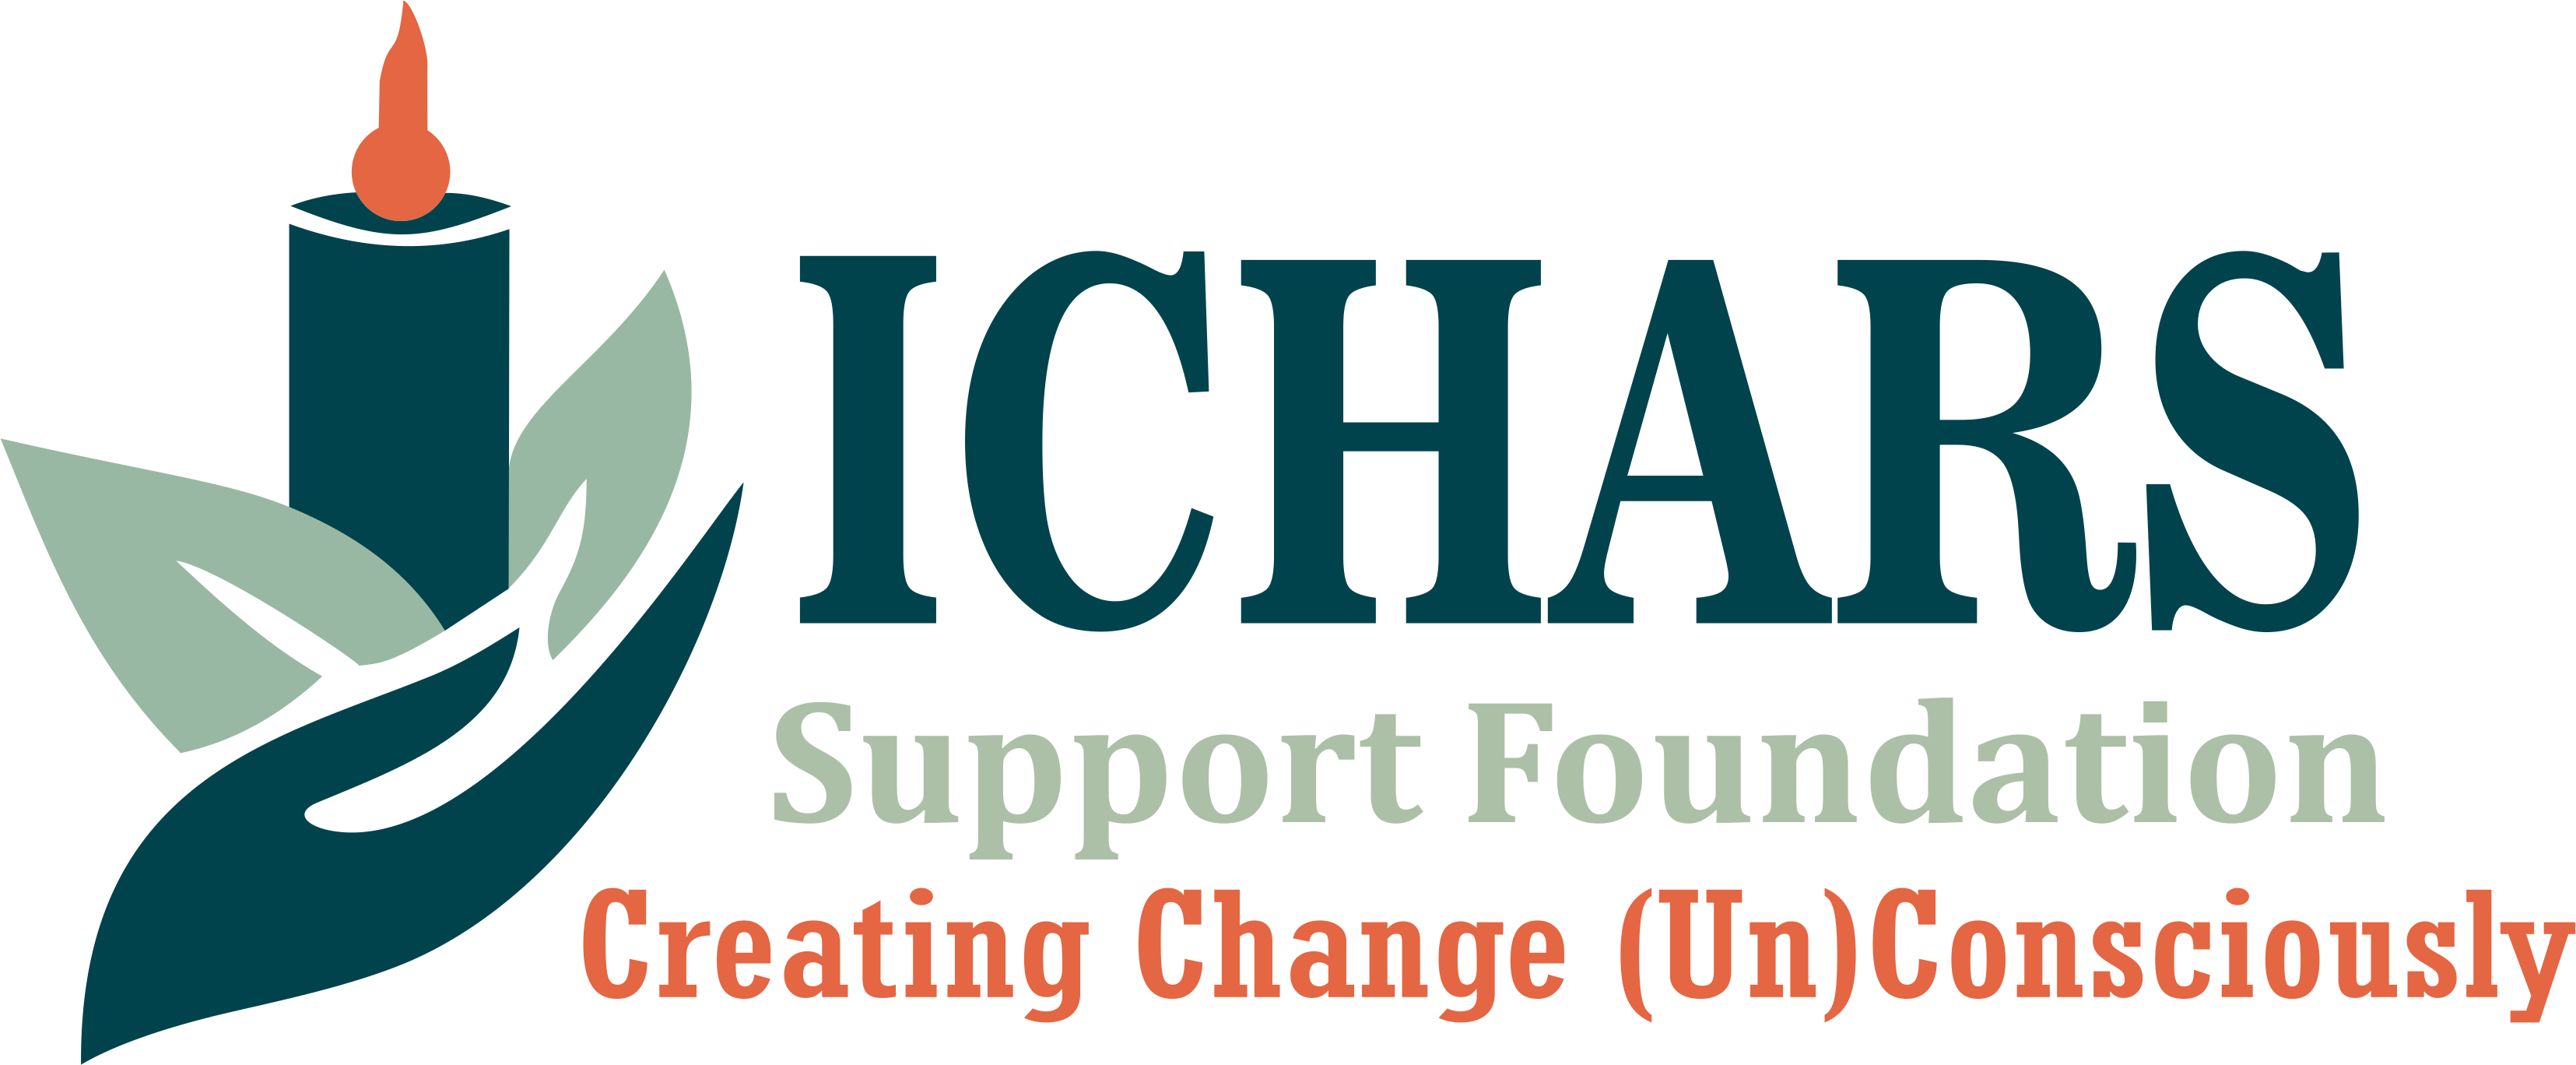 ICHARS support Foundation logo - About us